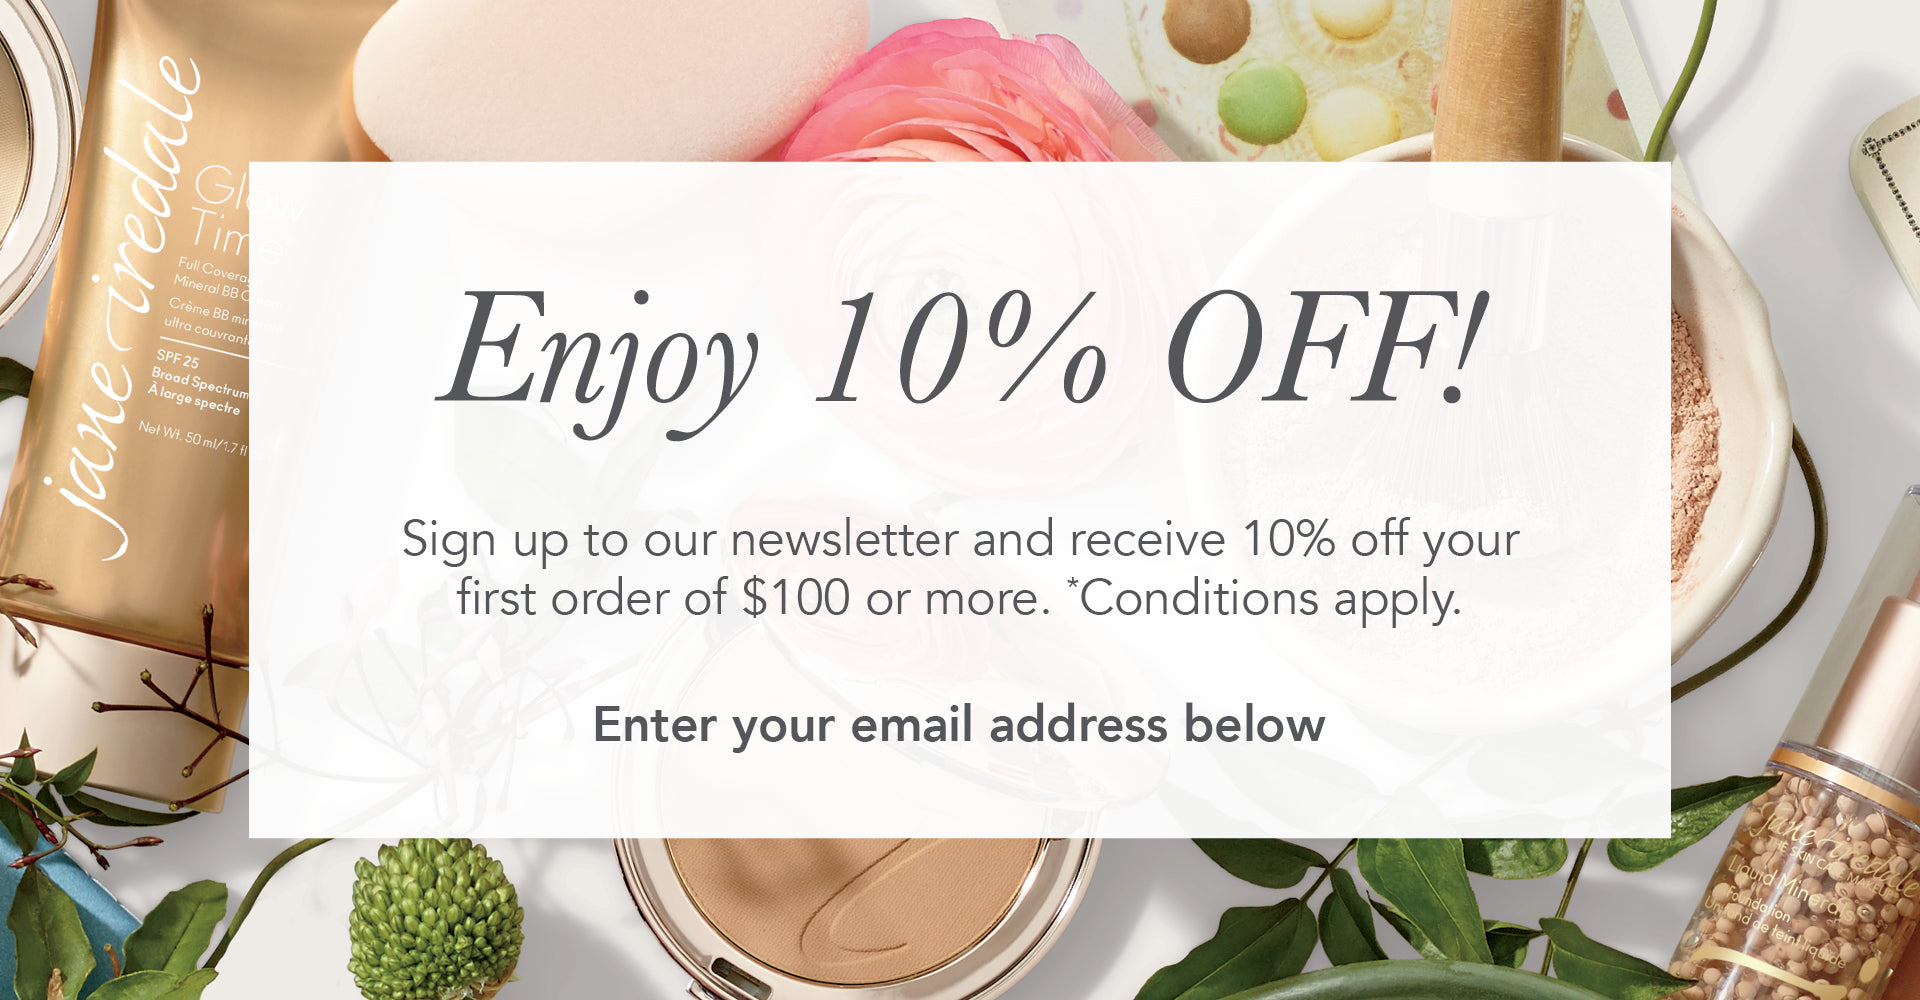 Enjoy 10% OFF your order when you subscribe to our newsletter